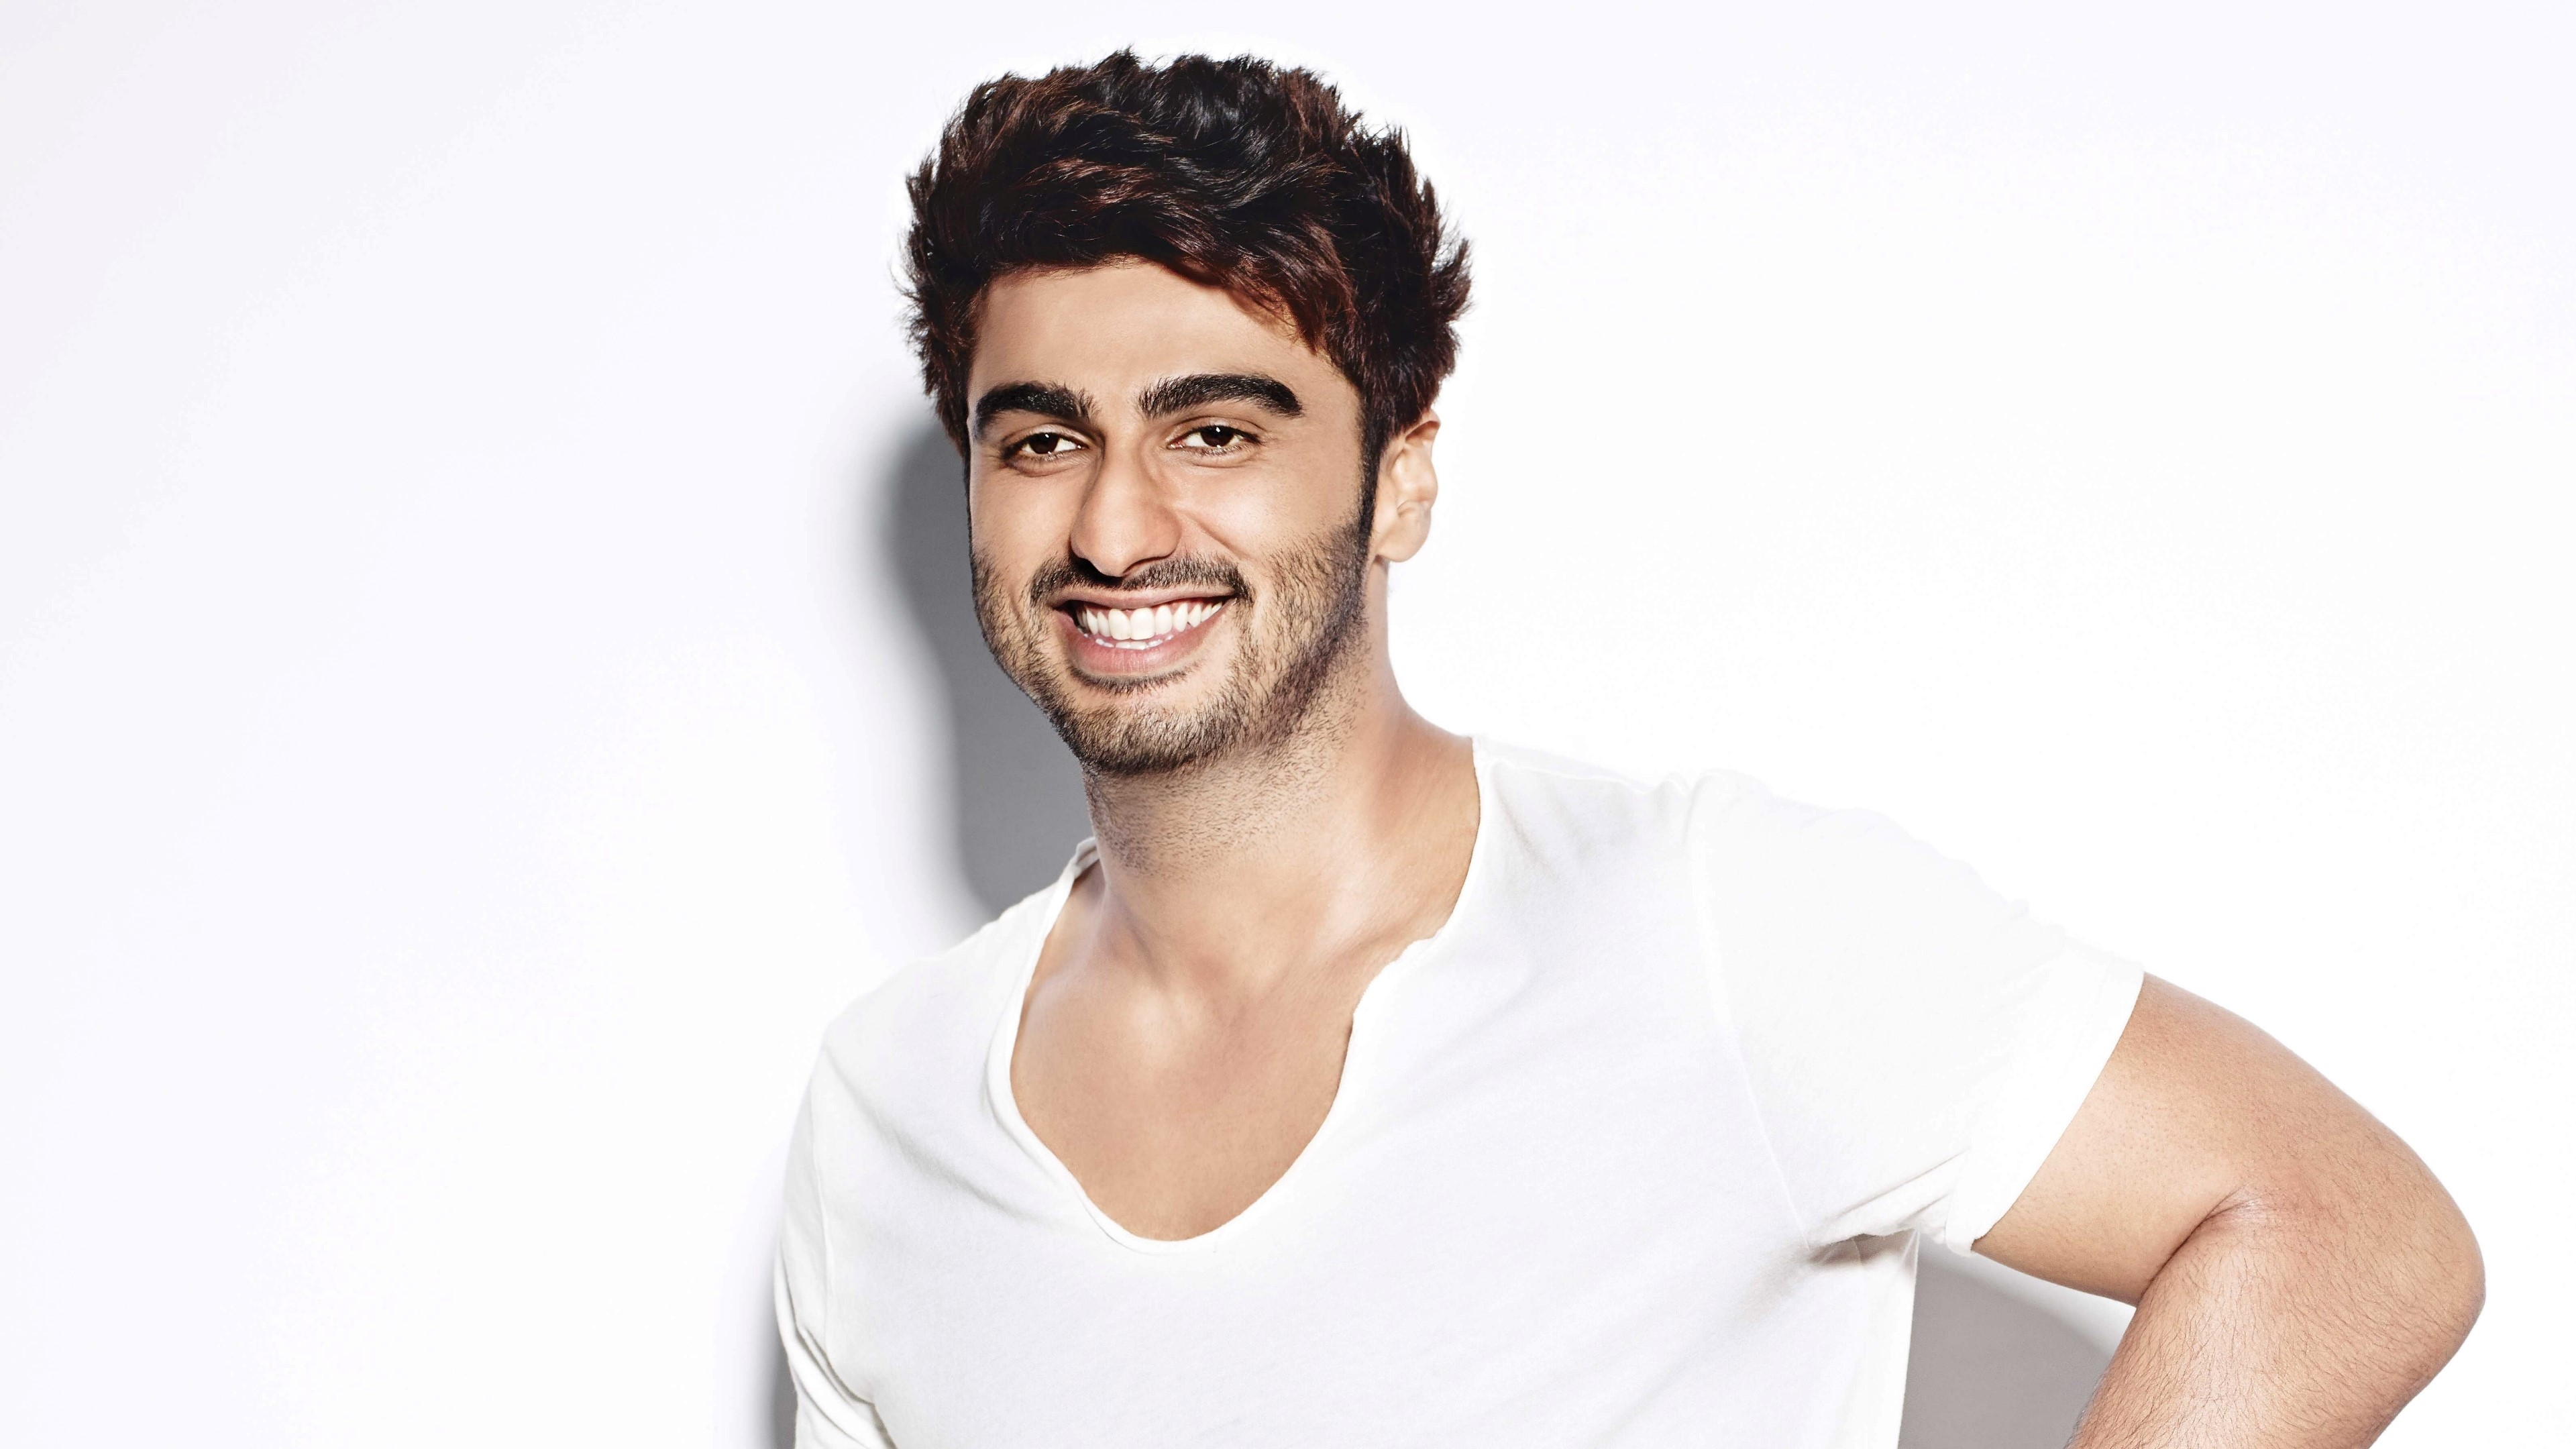 handsome actor arjun kapoor wallpaper download 1080p cool 3840x2160